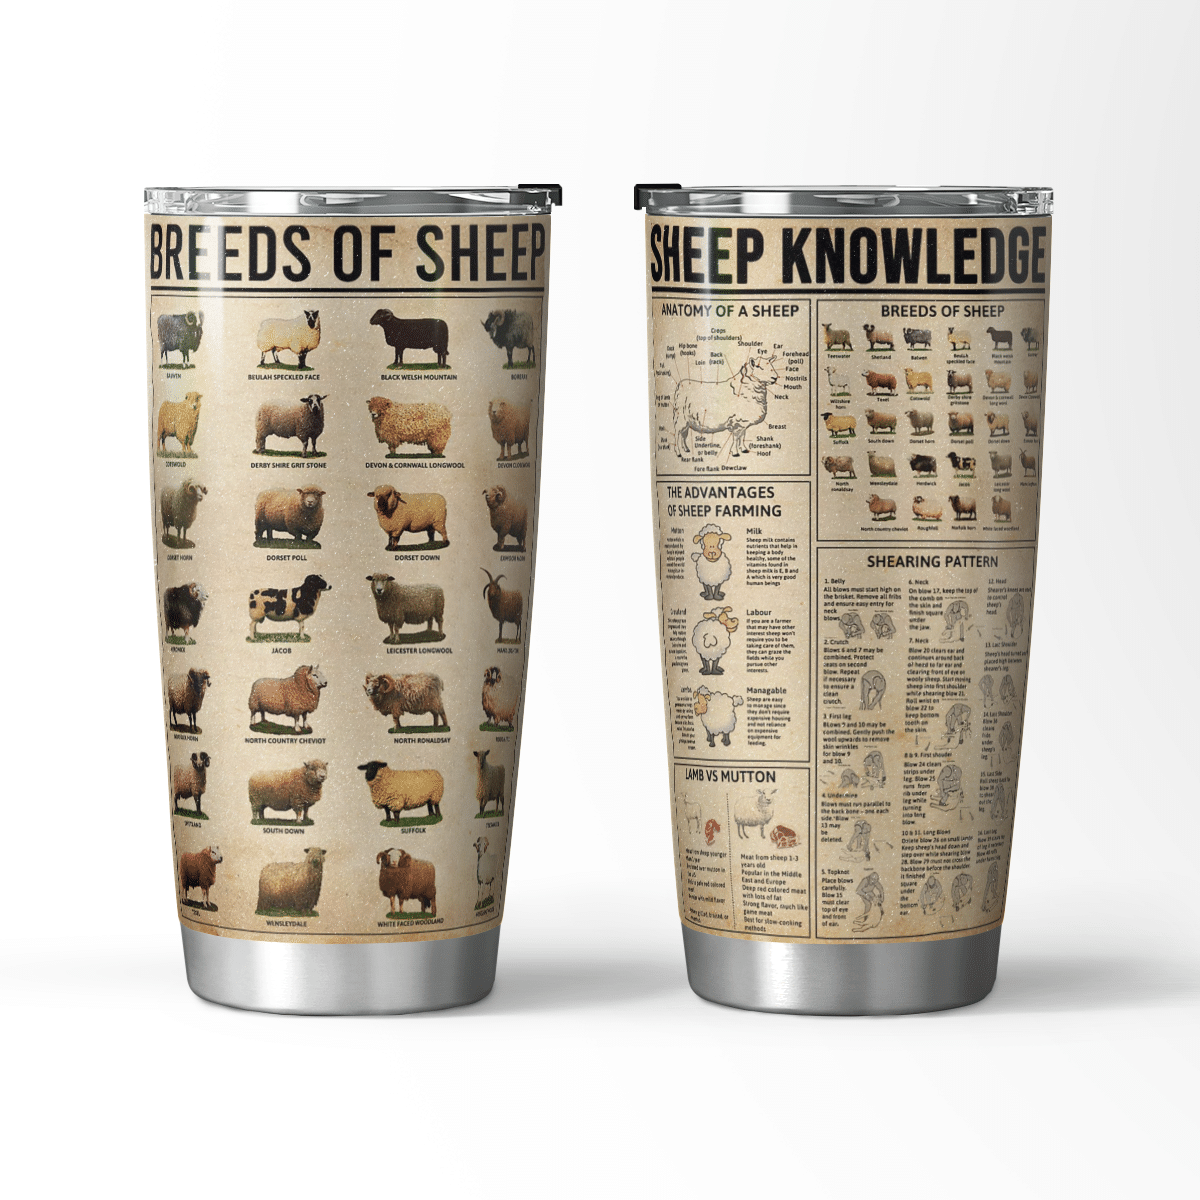 Breeds of sheep knowledge farmer love tumbler Cup